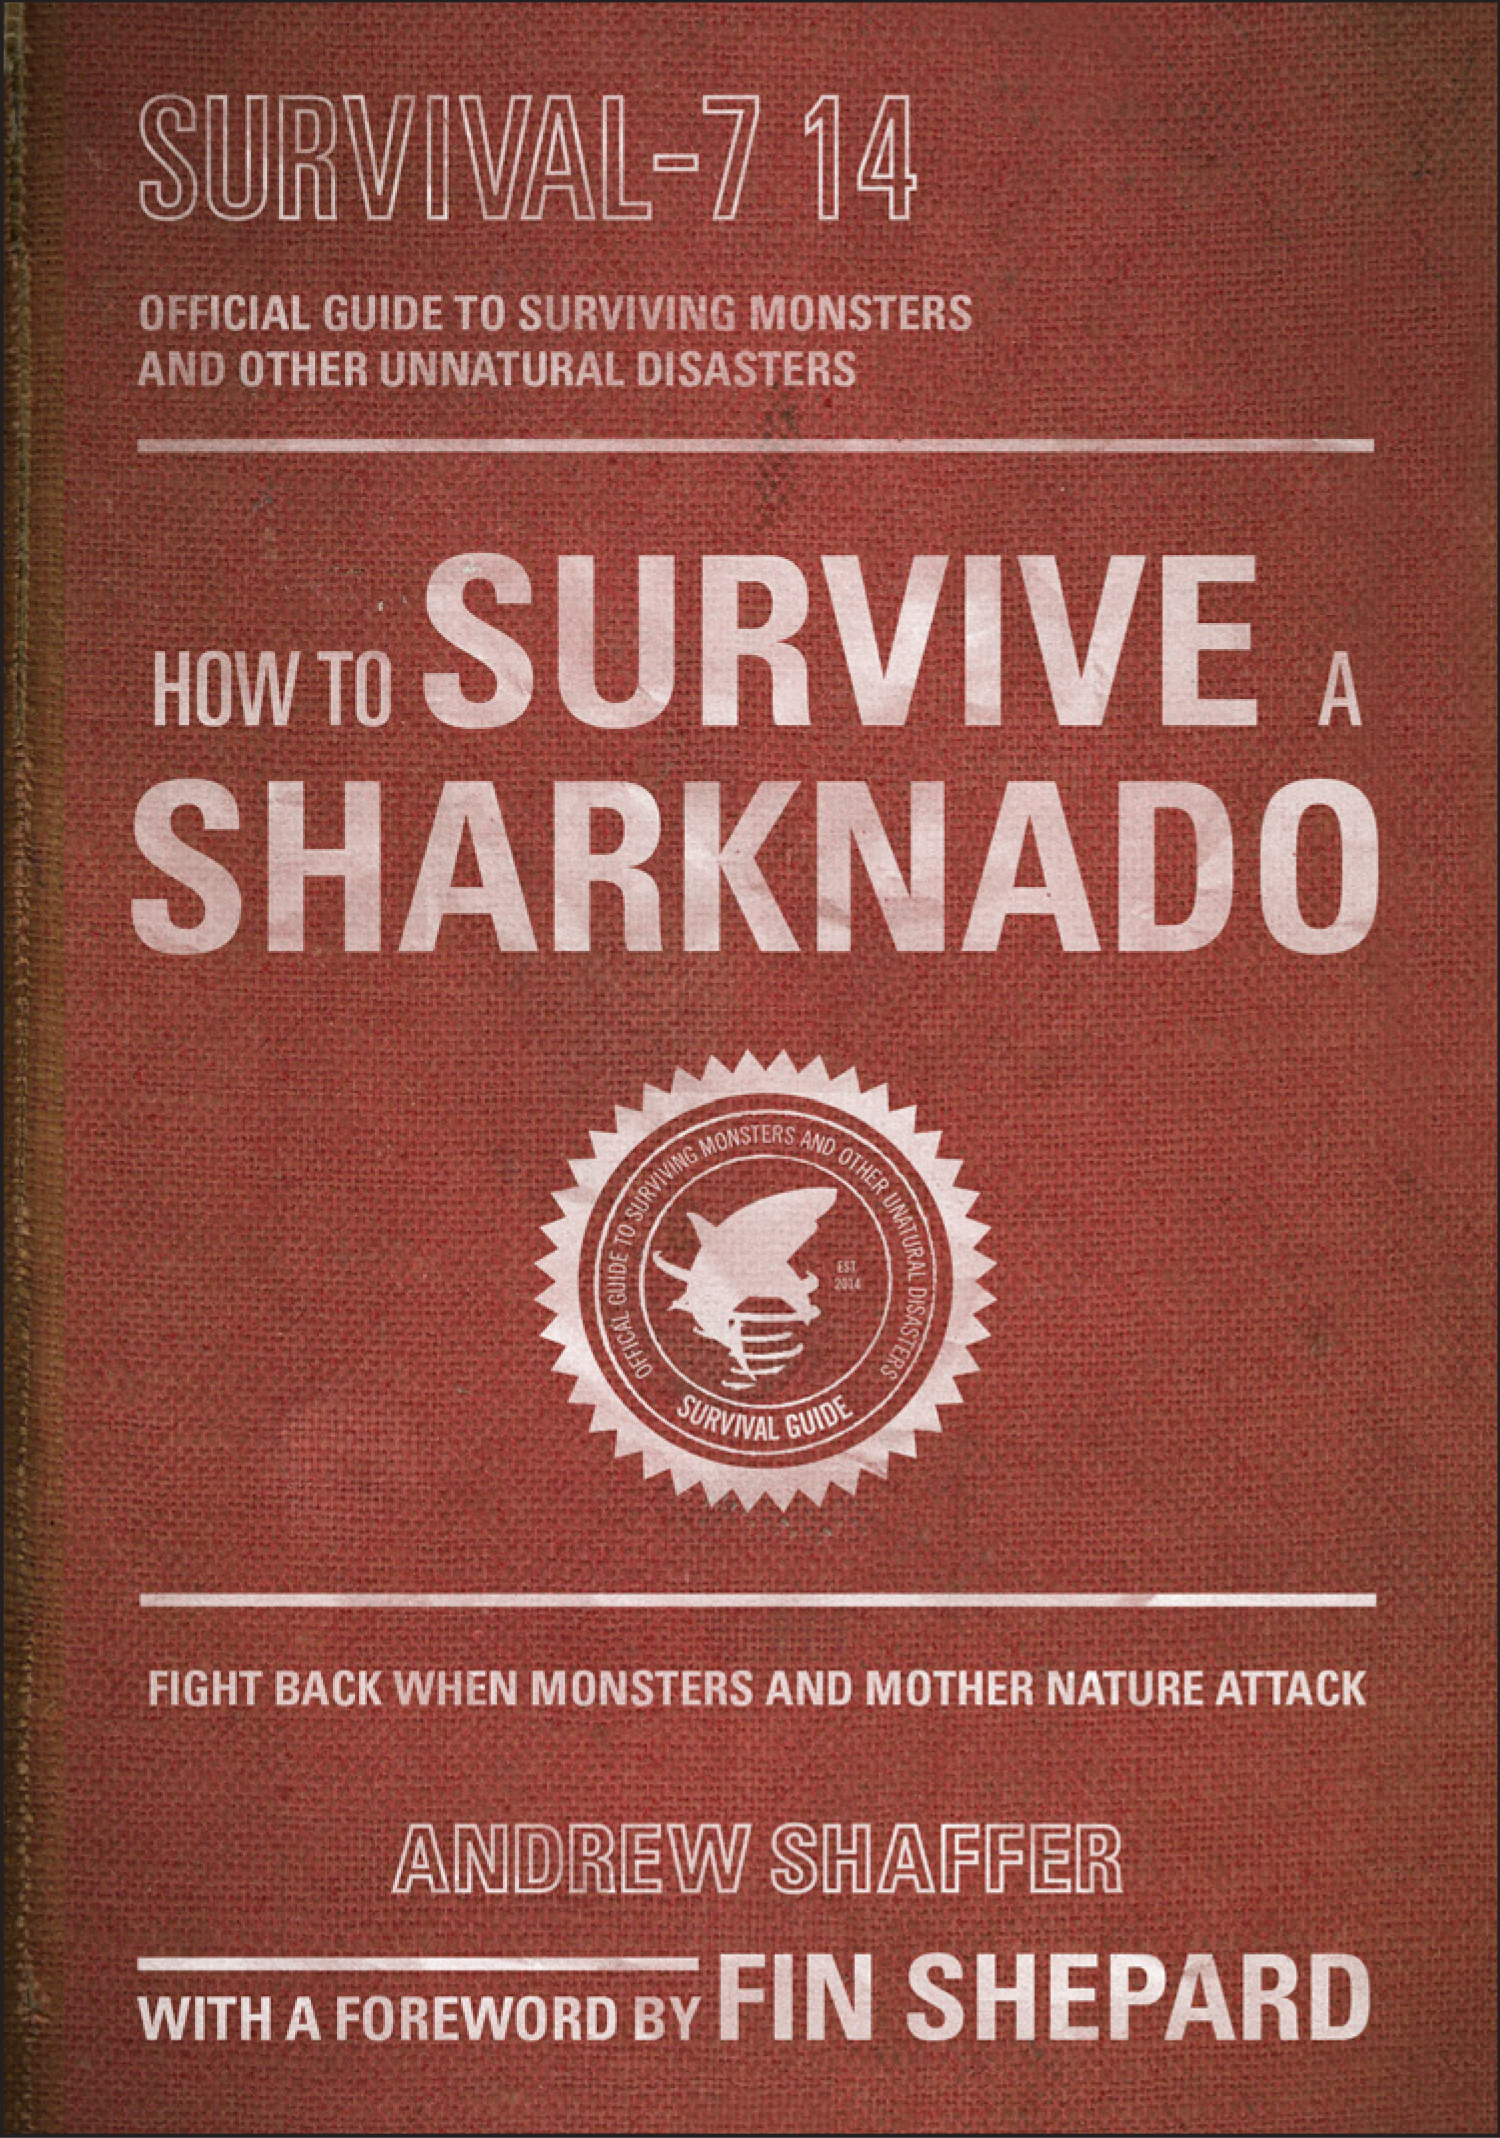 Sharknado tie-in, interior design